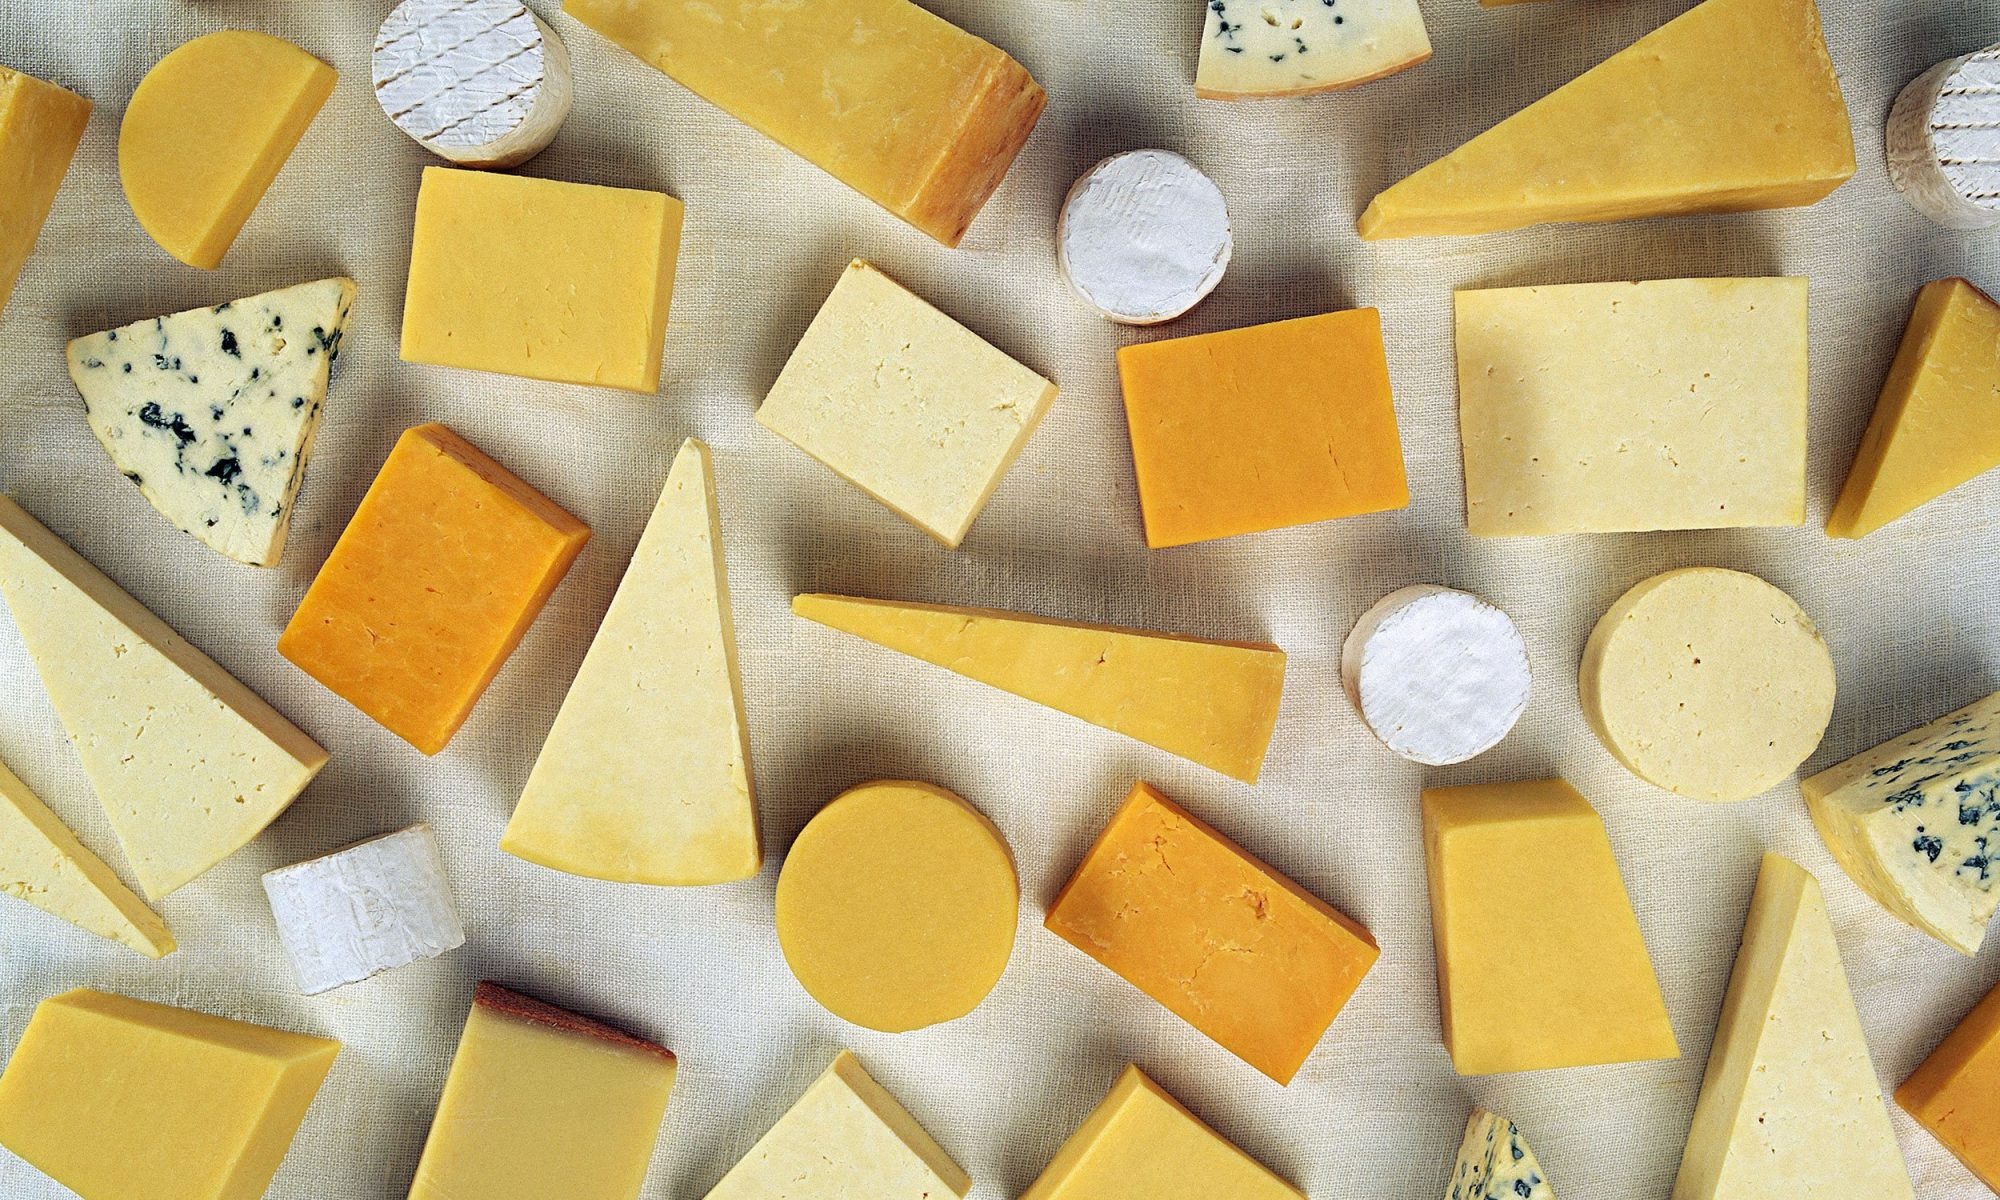 EC: Naturally Lactose-Free Cheese Is More Common Than You Think